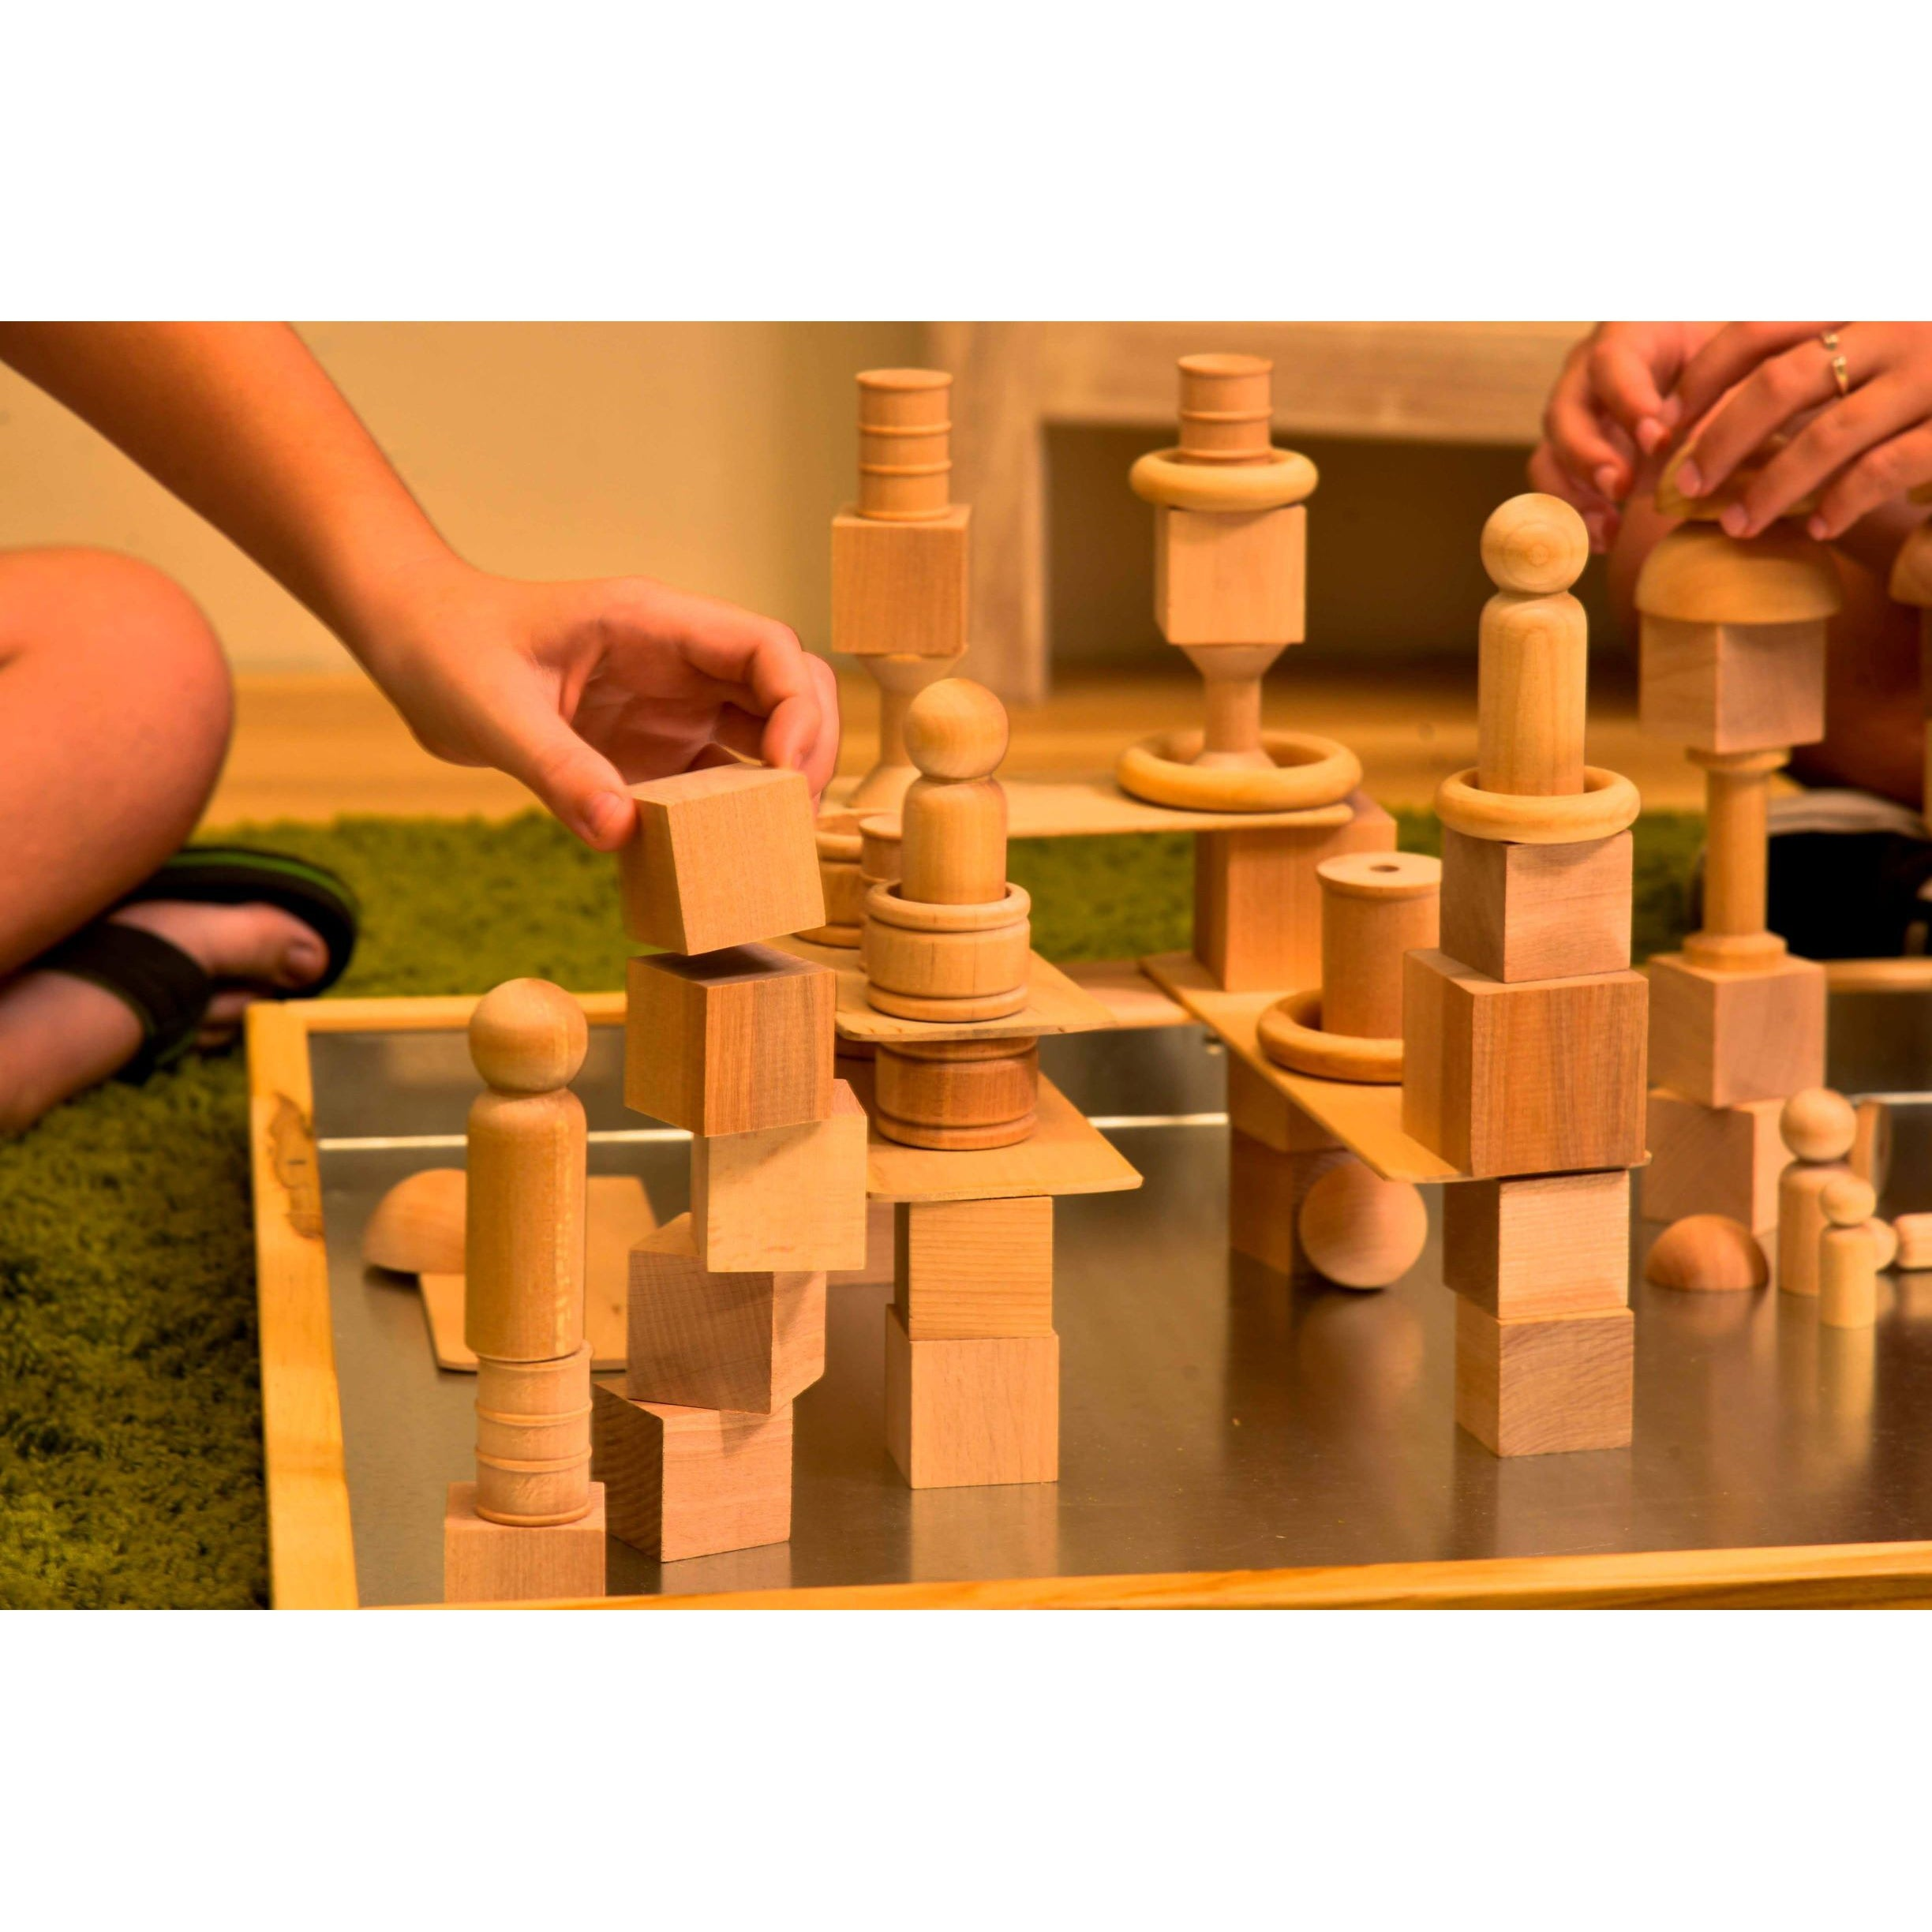 Loose Parts Tower Blocks, set of 75